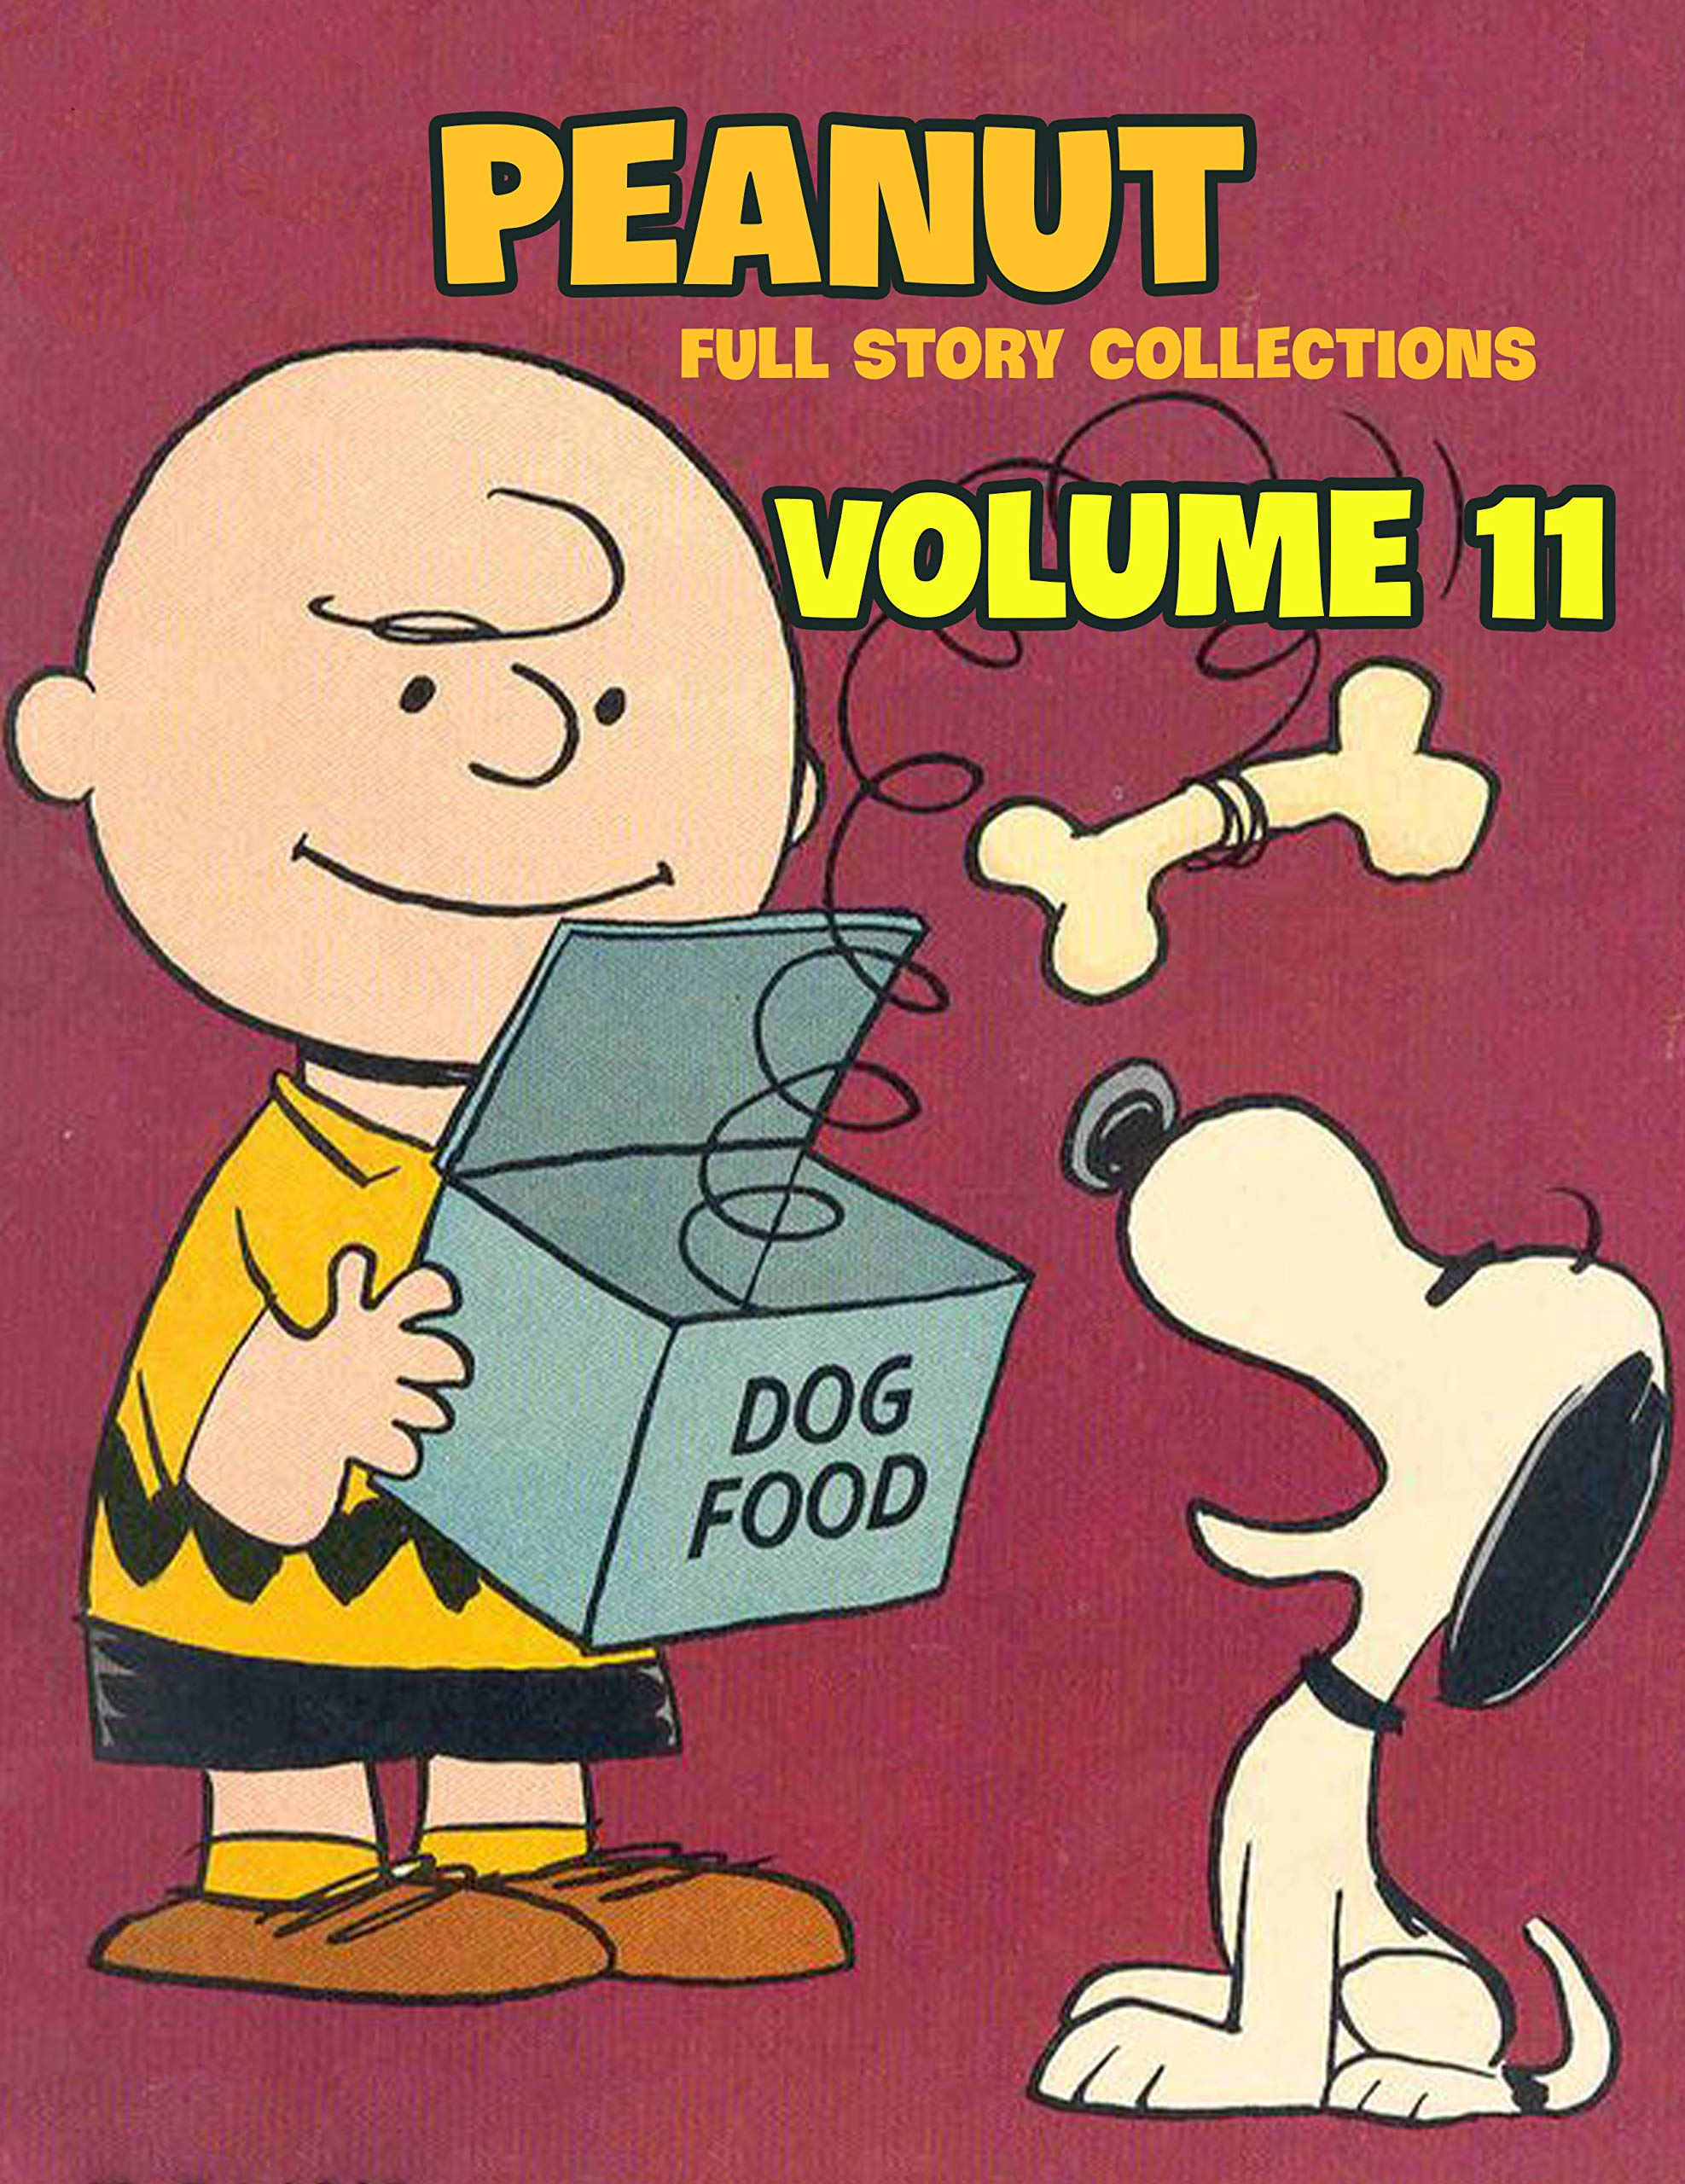 Full Story Peanut Collection Vol 11: Full Book of Peanuts Limited Edition Vol 11